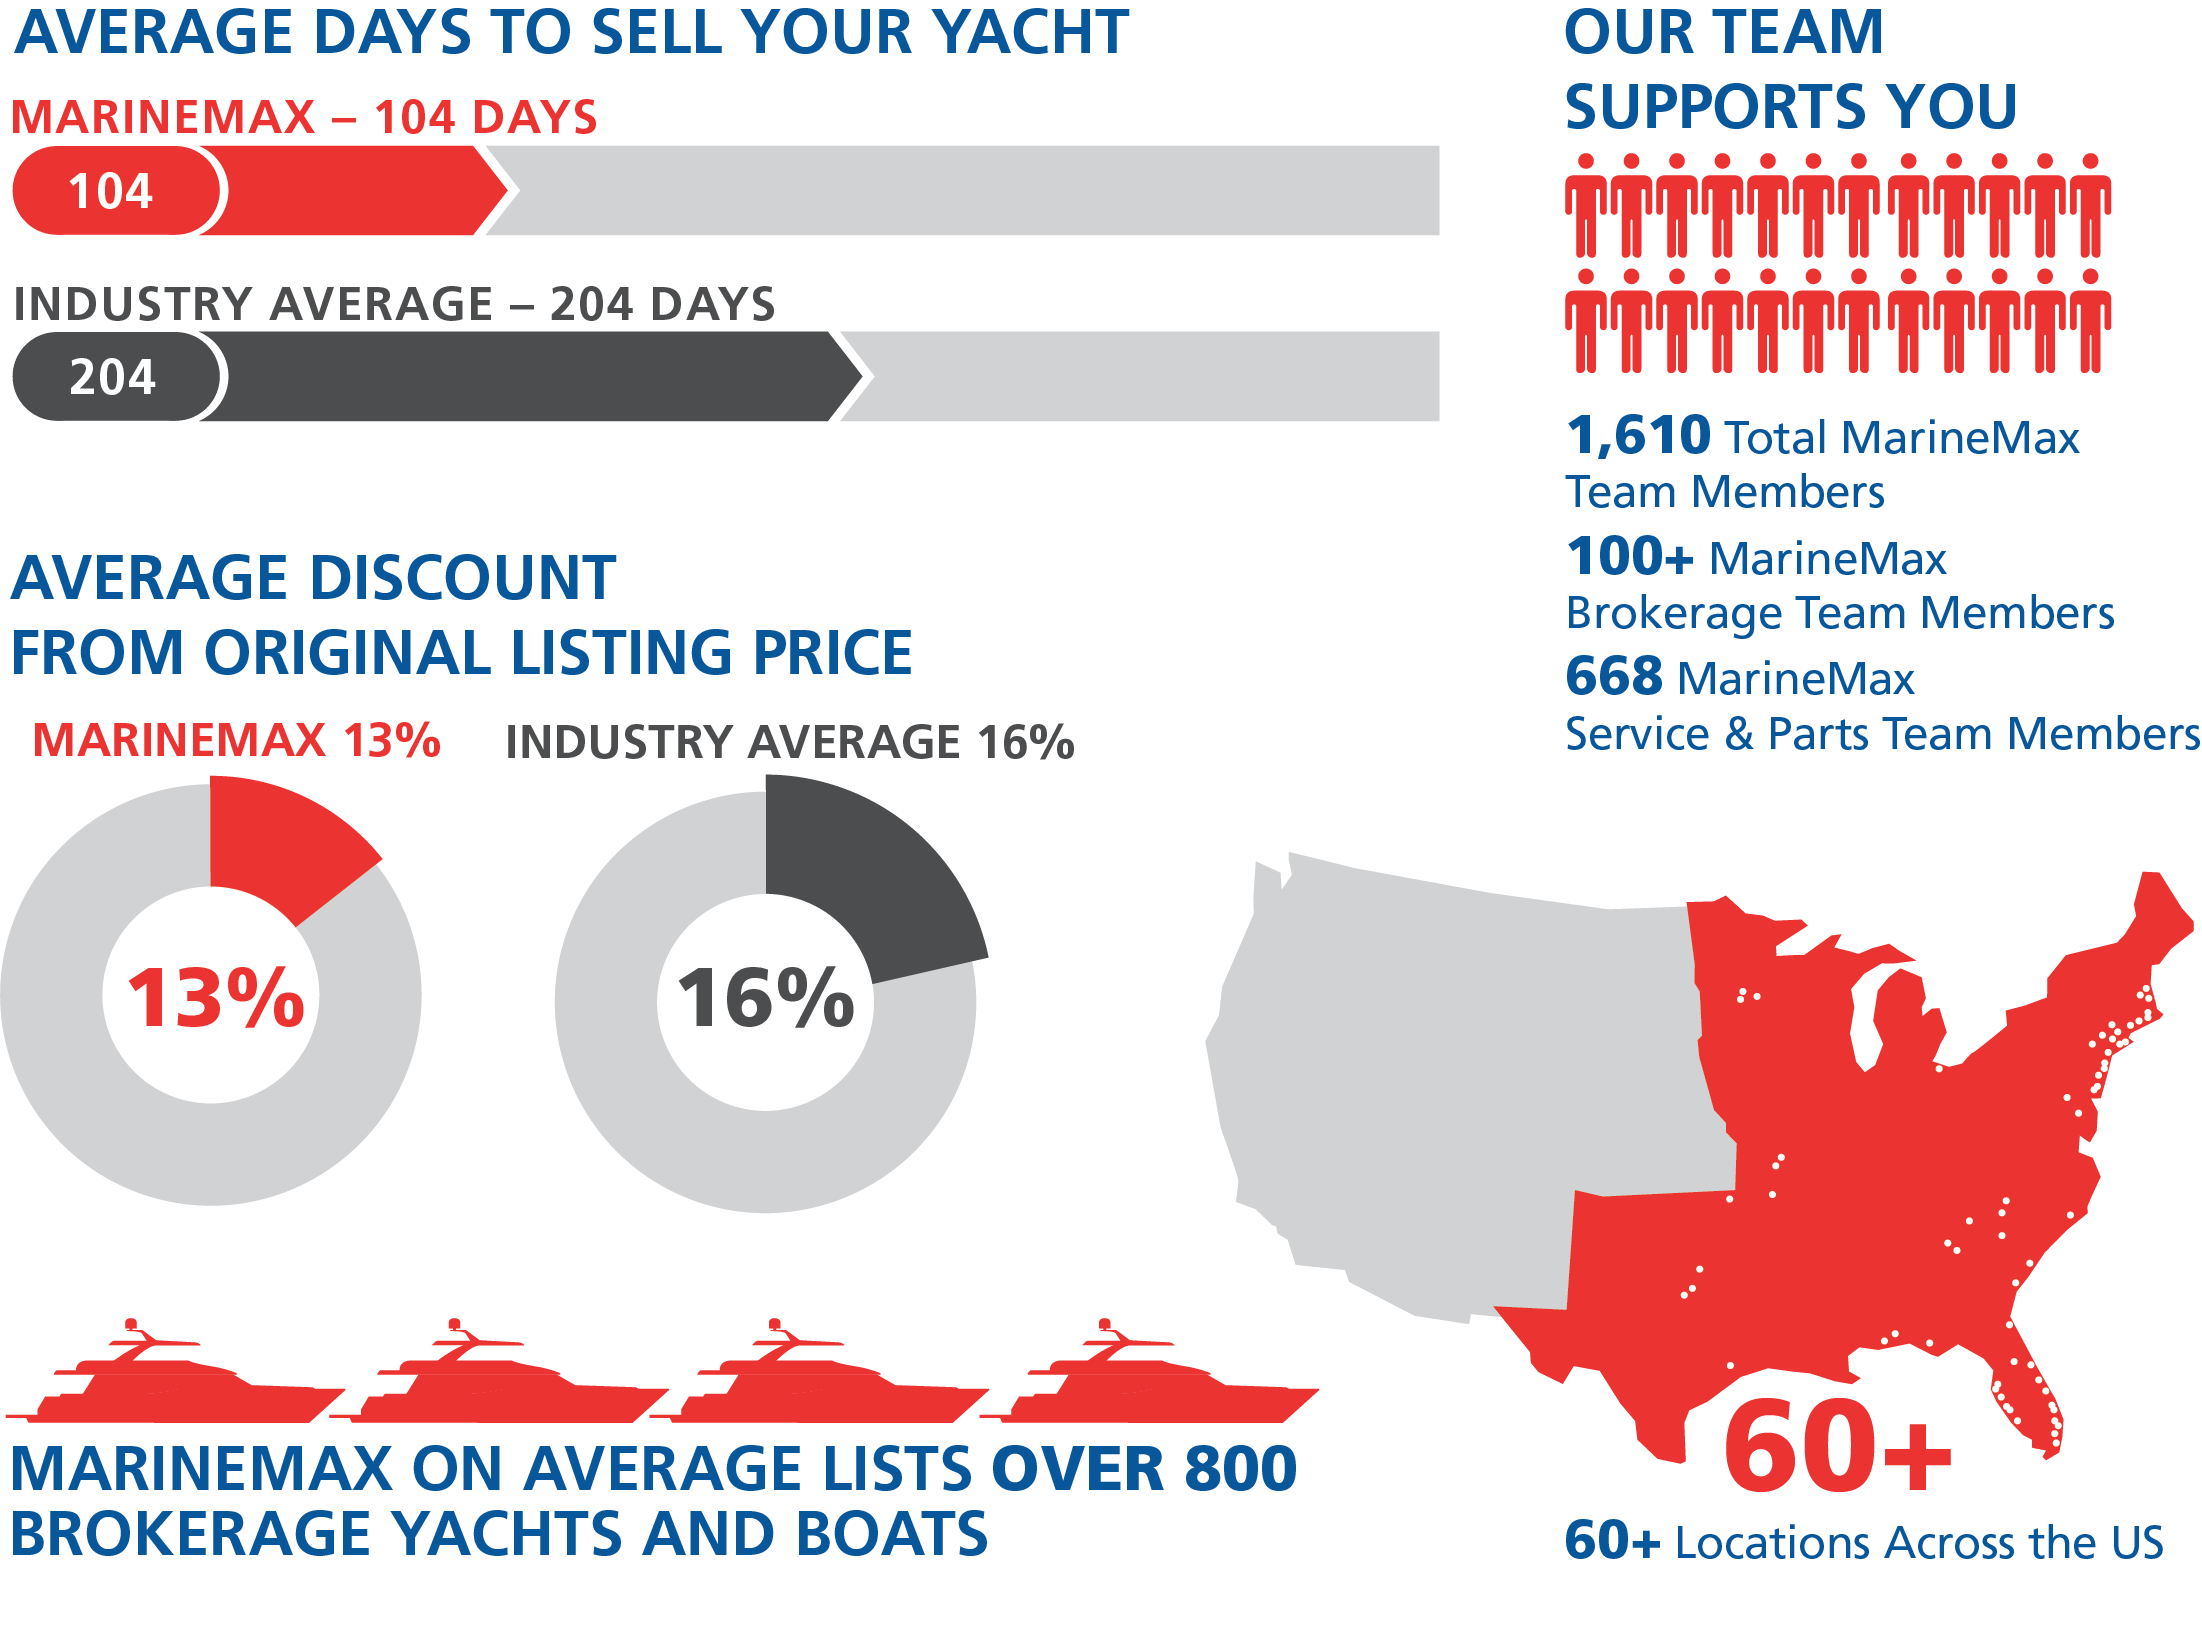 stats about marinemax yachts brokerage services